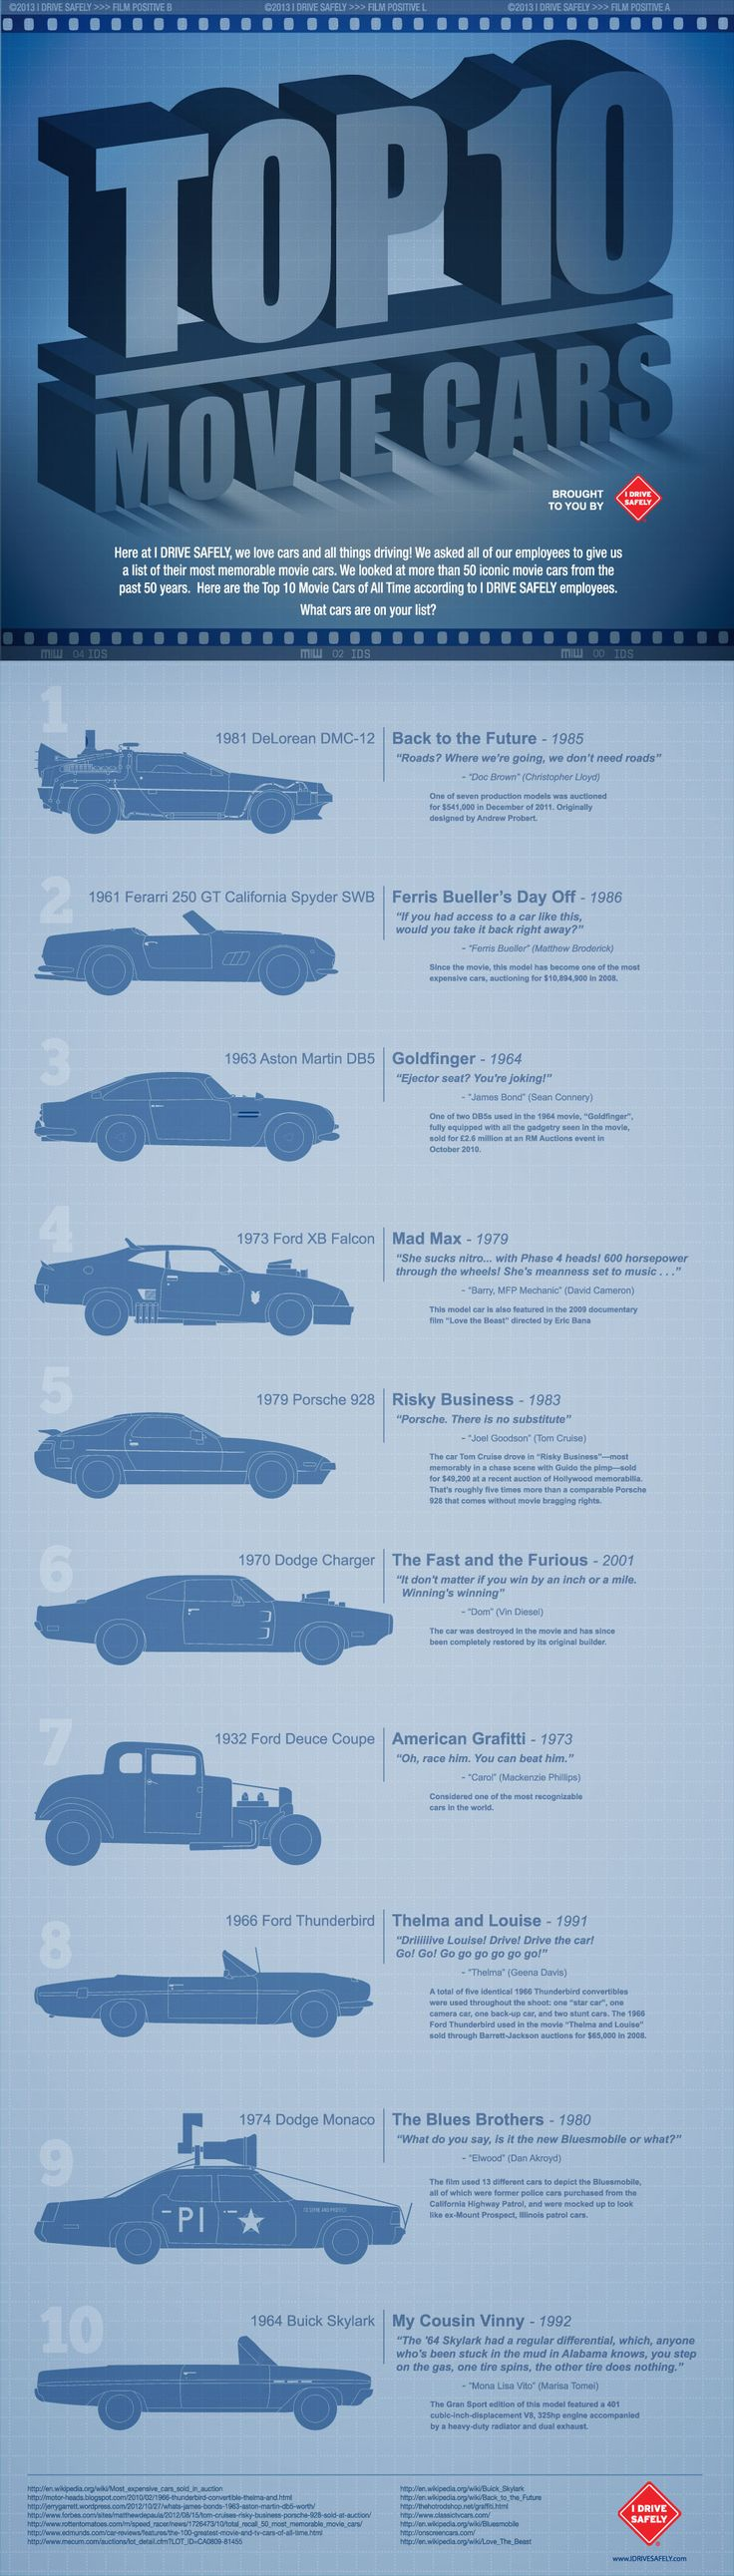 Some of the most iconic cars of all times came from some of the best movies.  I DRIVE SAFELY employees looked at famous movie cars from the last 5 dec